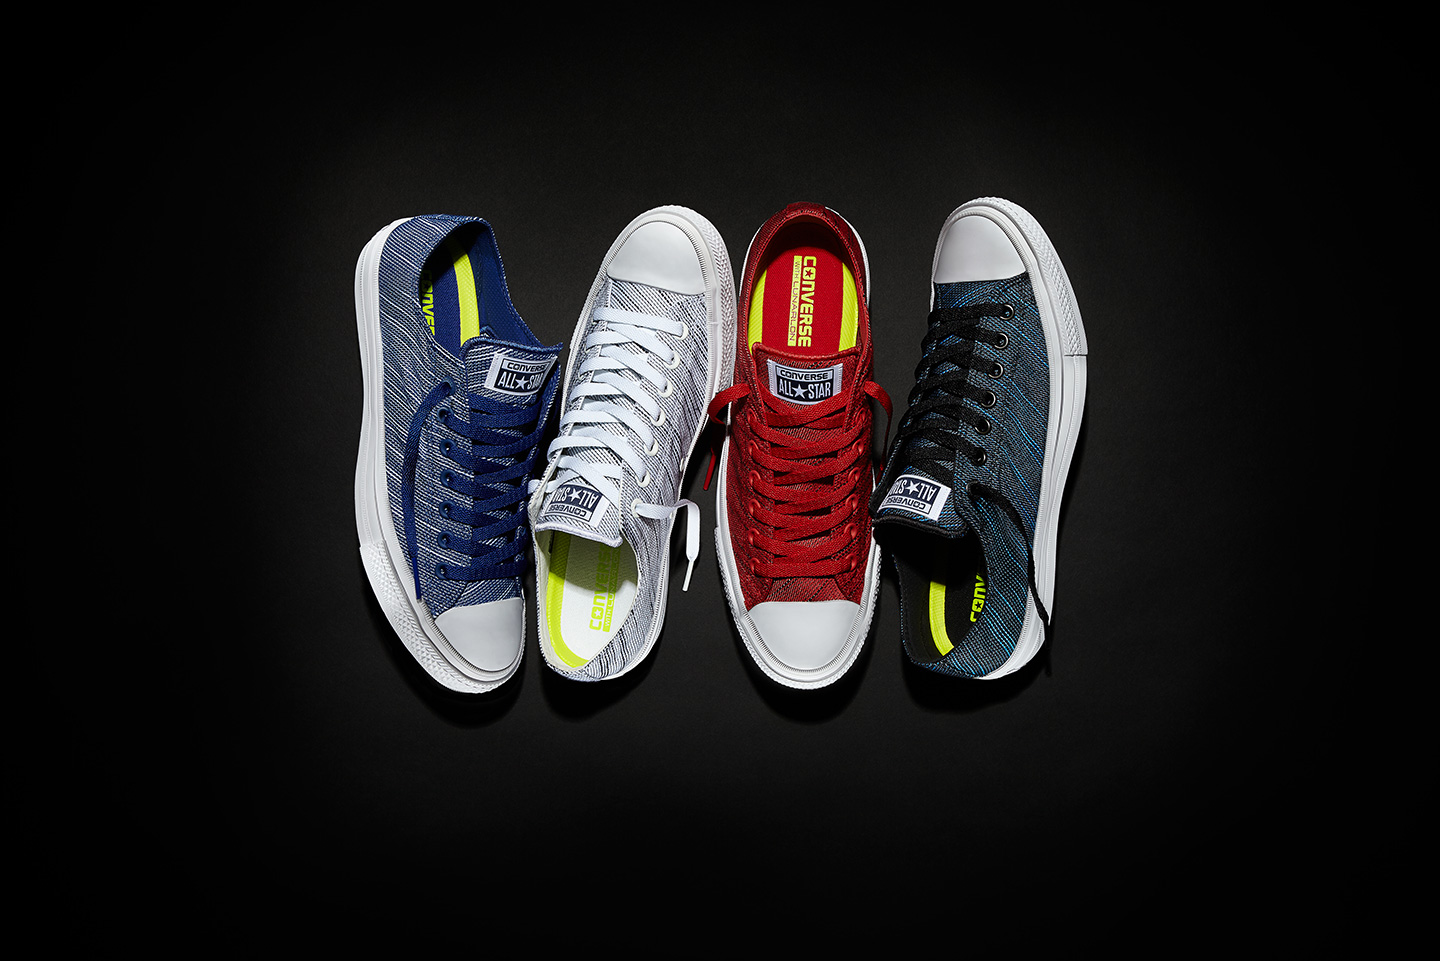 16d39328b081 The new Converse Chuck Taylor All Star II Knit collection complements you  for the spring with a launch date of April 25 in Volt Green